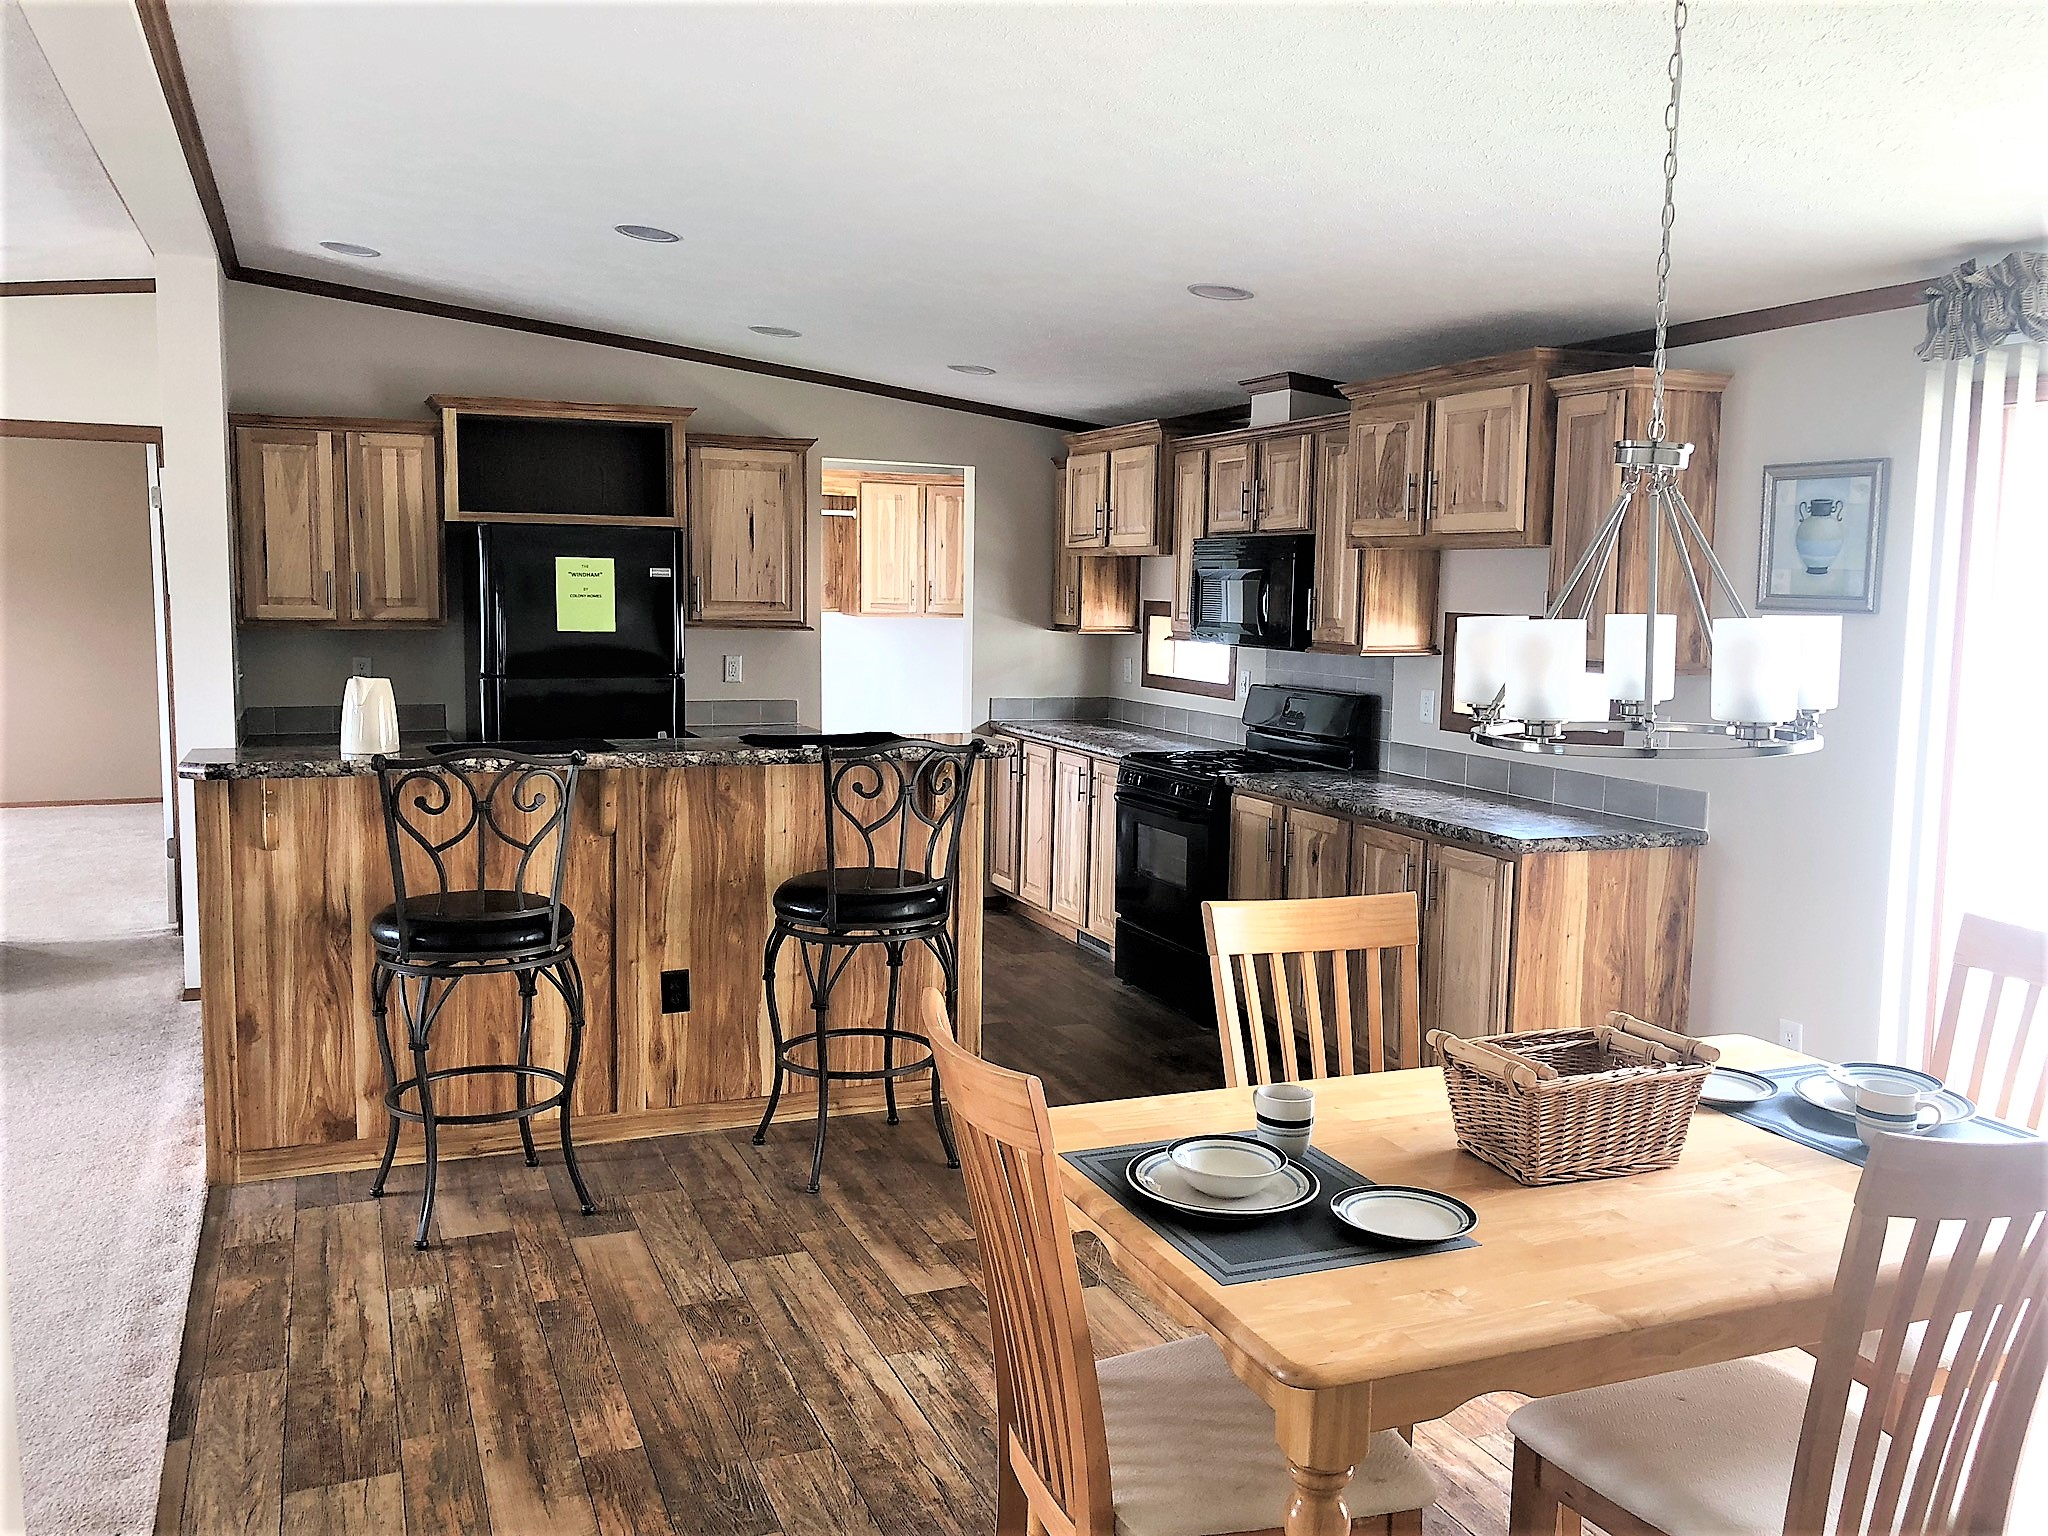 View Showing The Kitchen With Hickory Cabinets